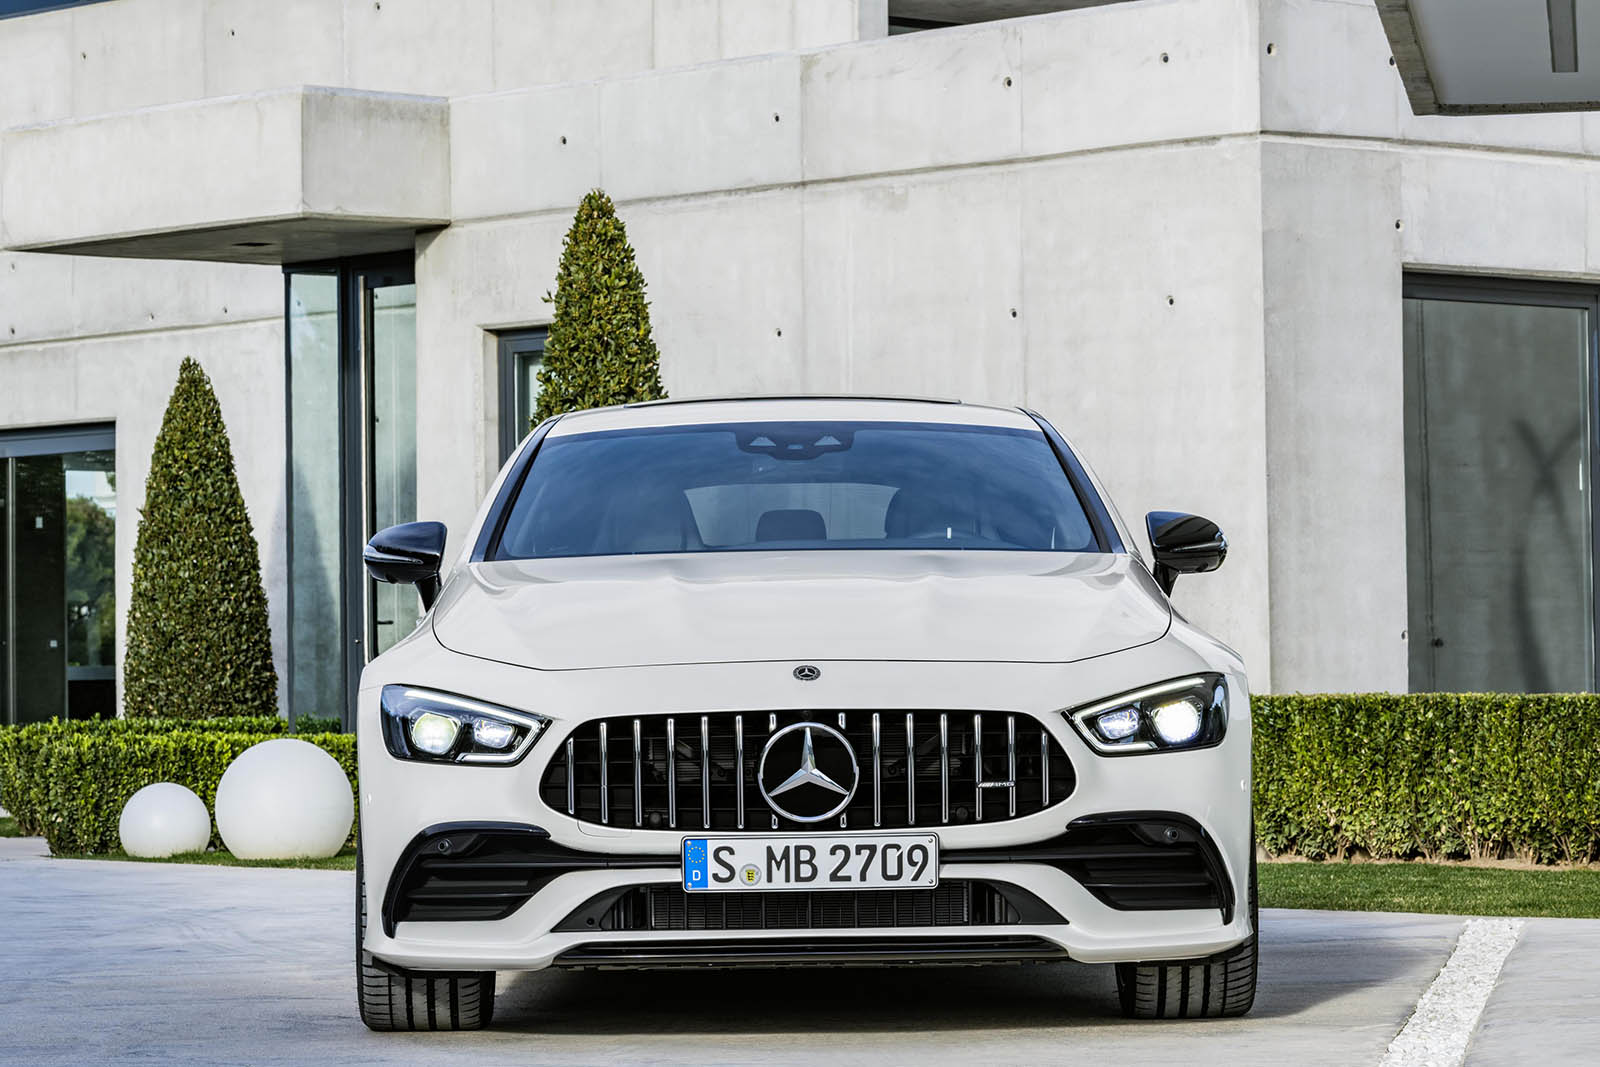 Mercedes-AMG GT 4-Door Coupe performance tijger